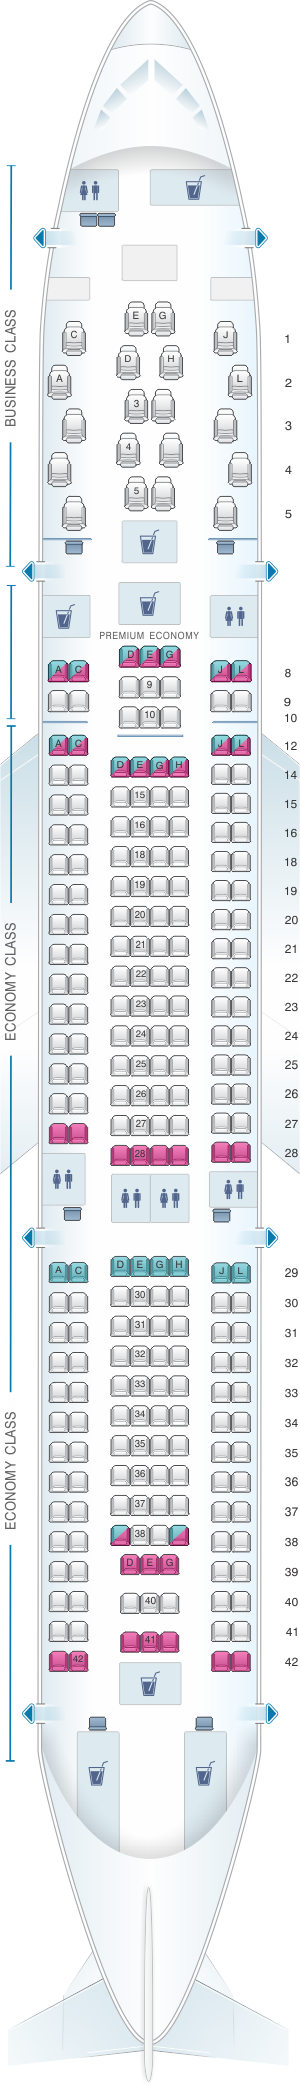 Seat map for Alitalia Airlines - Air One Airbus A330 200